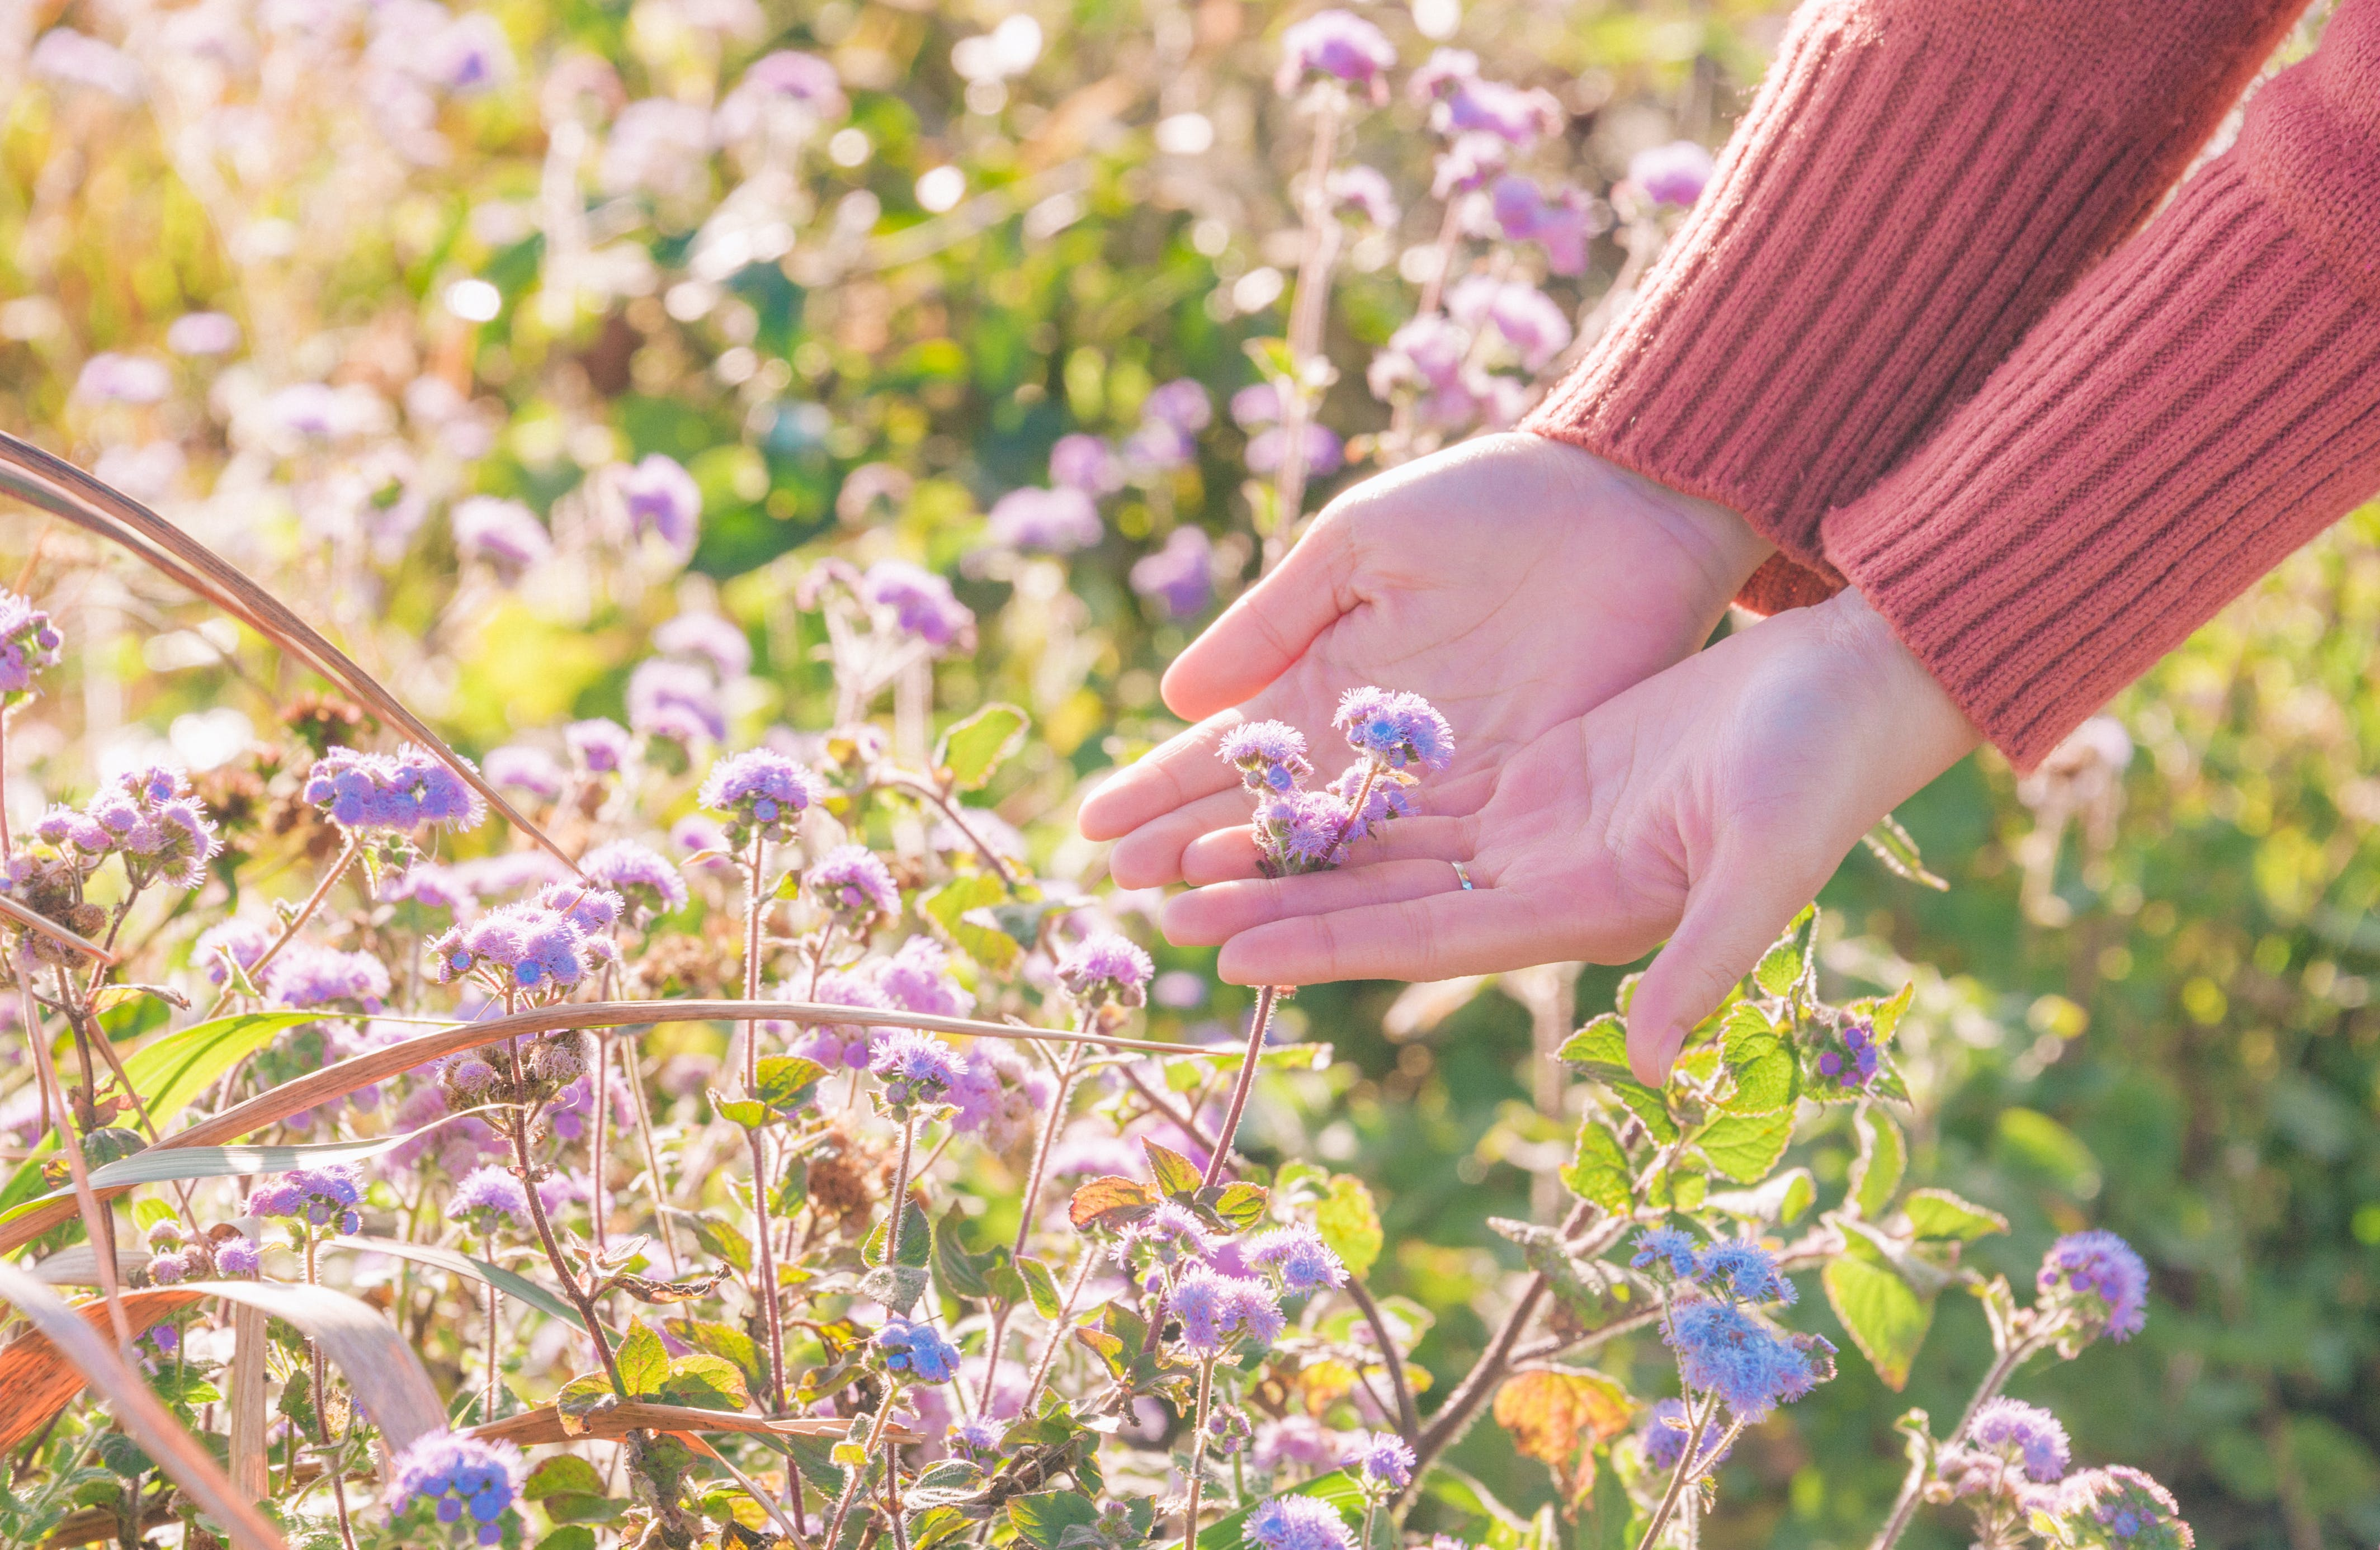 Person Wearing Red Sweater Holding Purple Petaled Flowers